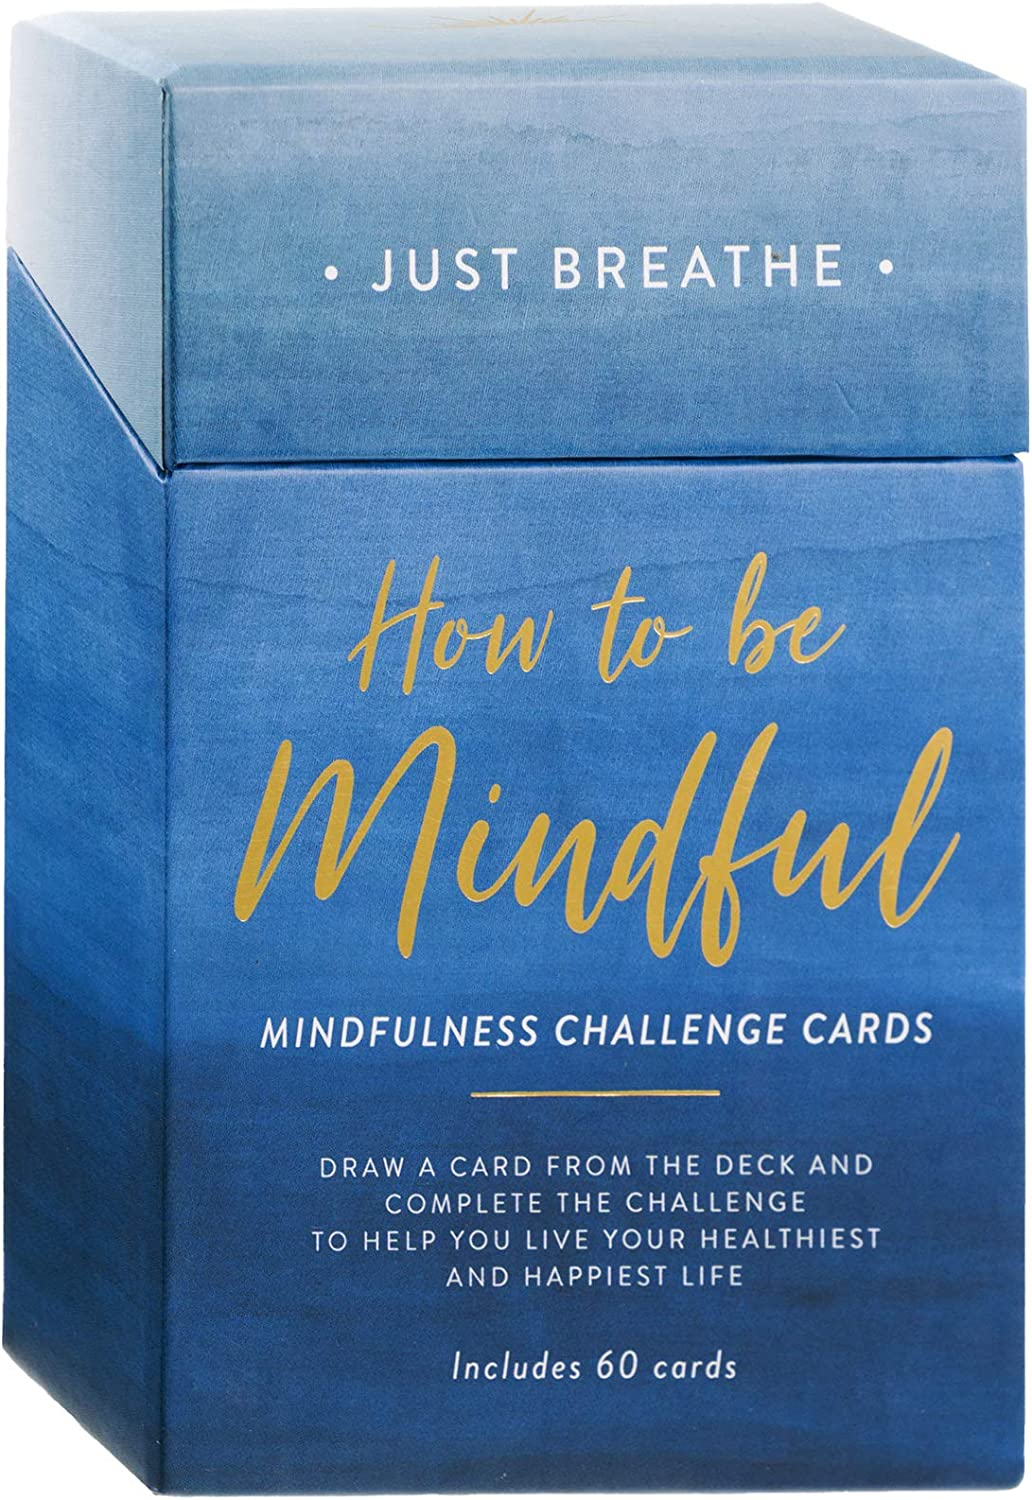 Eccolo How to be Mindful Challenge Cards - 60 Mindfulness Cards - Self Care Cards for Daily Positive Thoughts and Affirmations - Mindfulness Gifts & Affirmations Cards